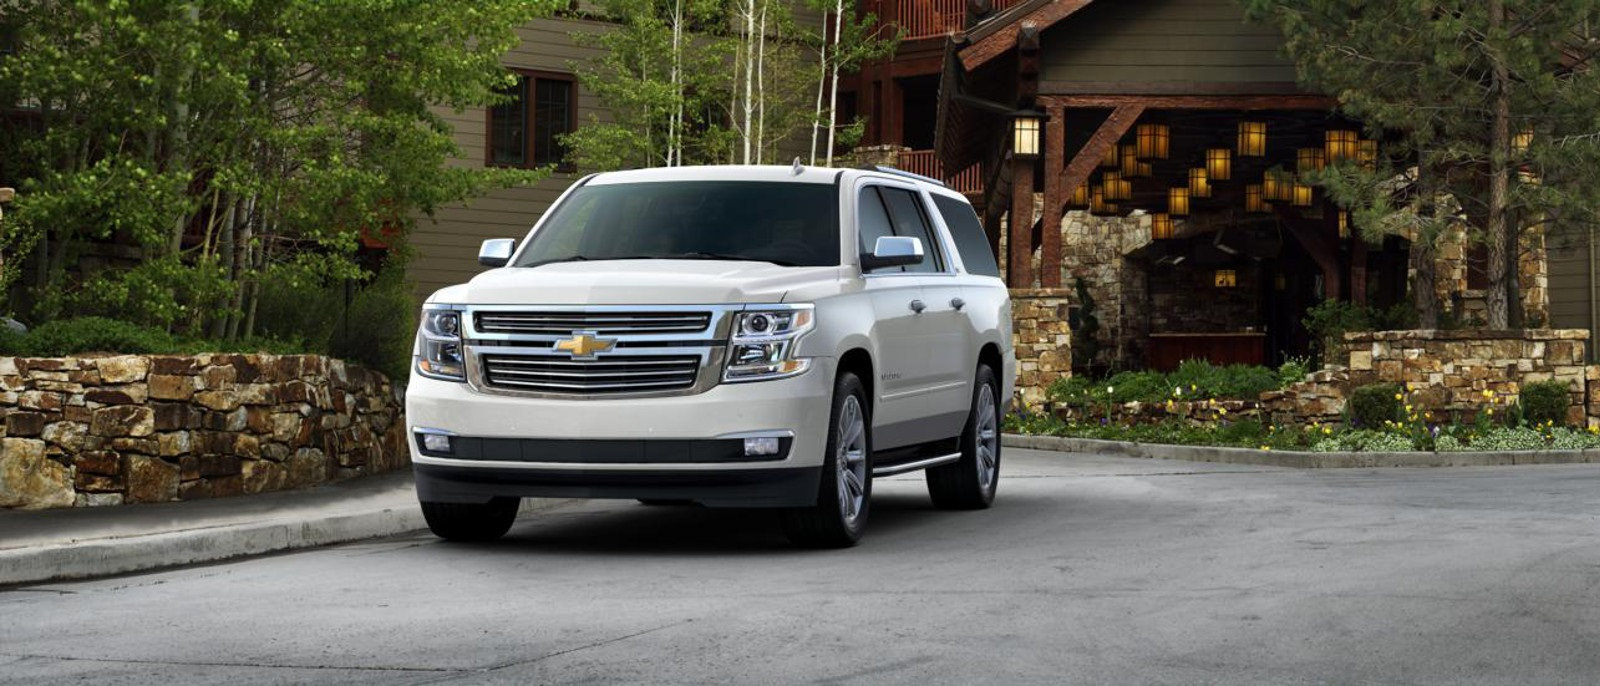 Suburban 2017 chevy suburban : Cover All Your Bases with the 2017 Chevrolet Suburban